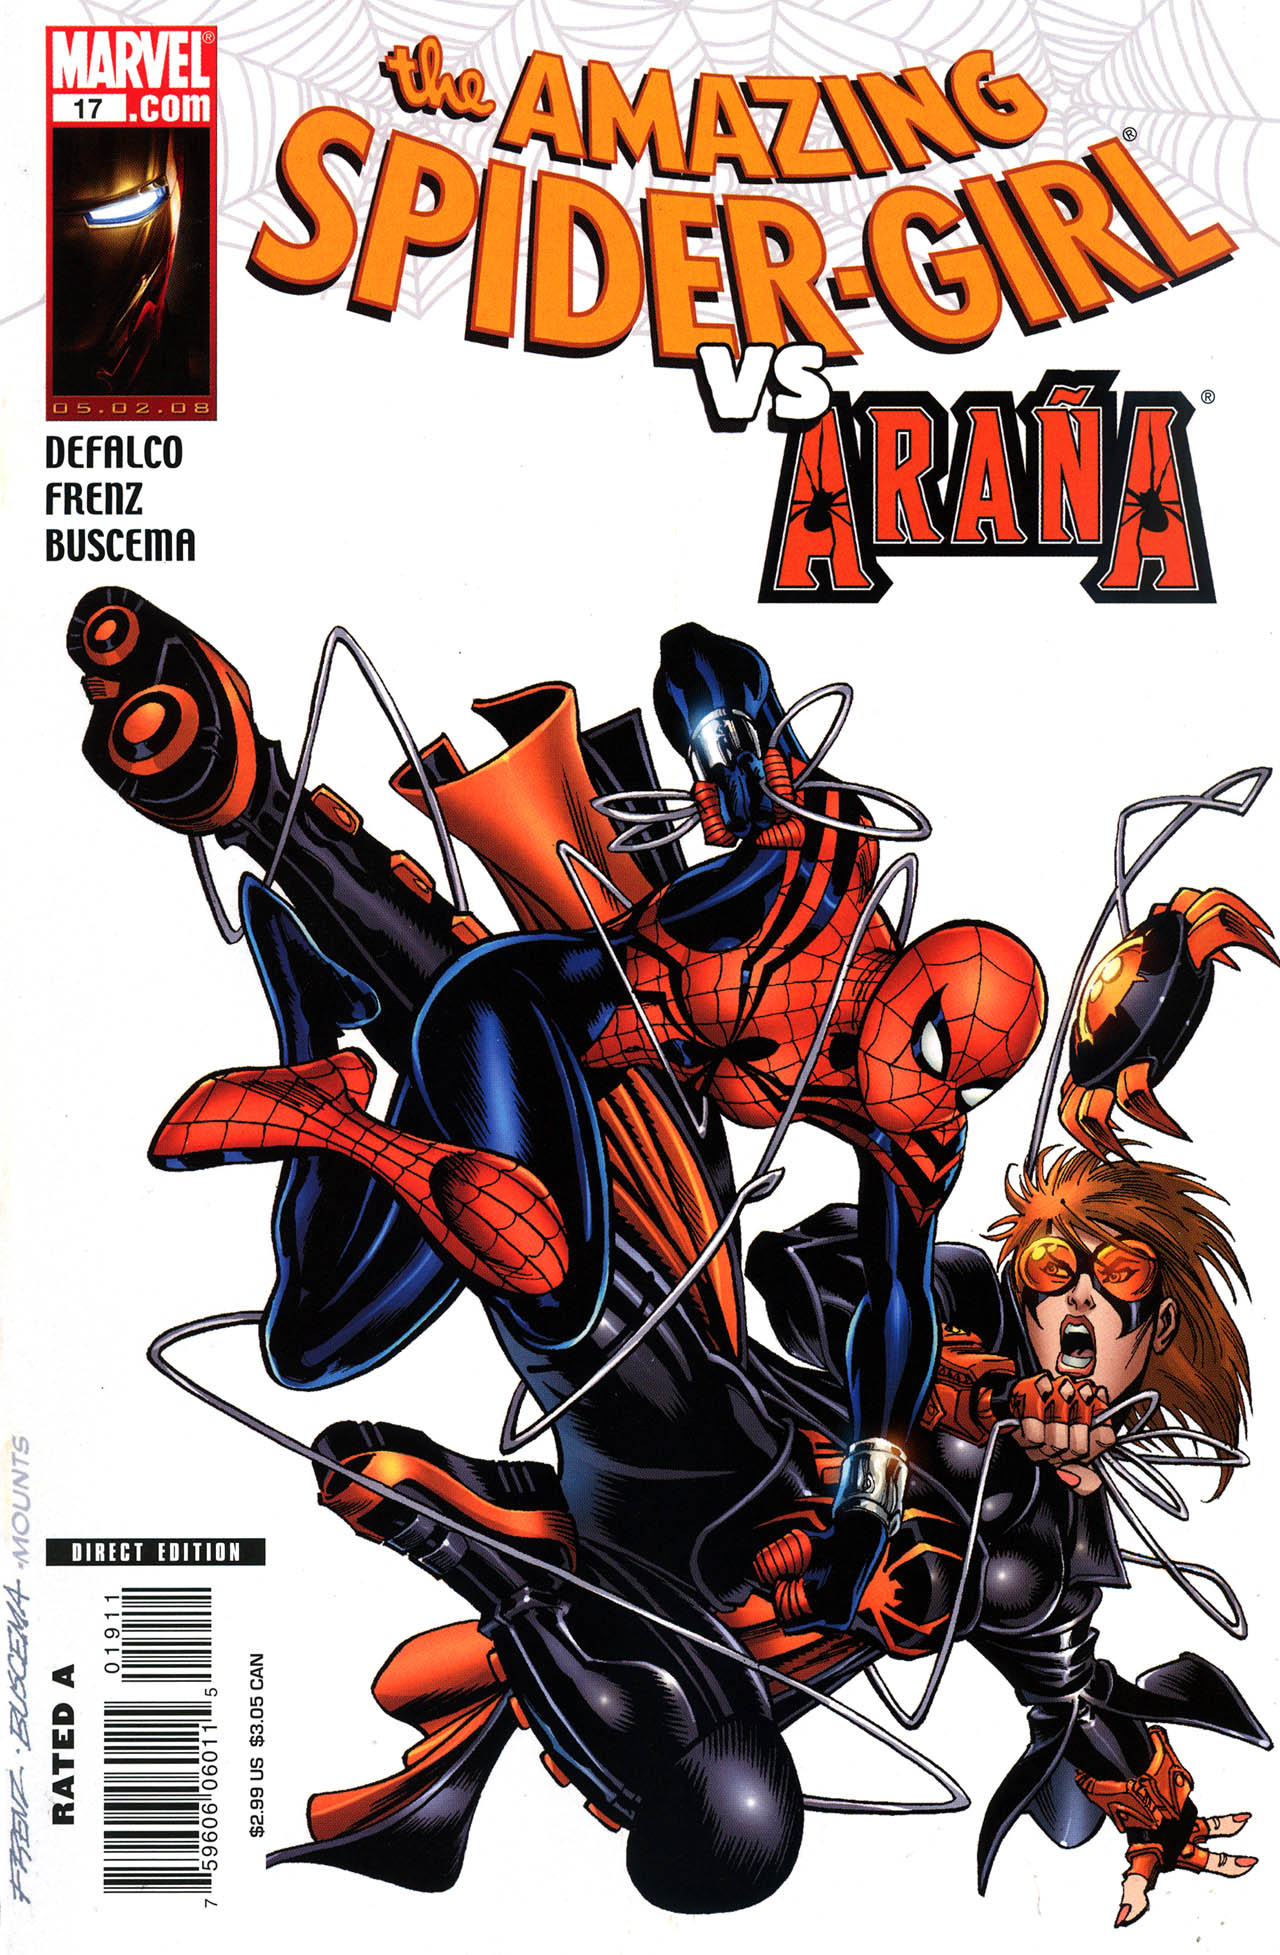 Read online Amazing Spider-Girl comic -  Issue #19 - 1